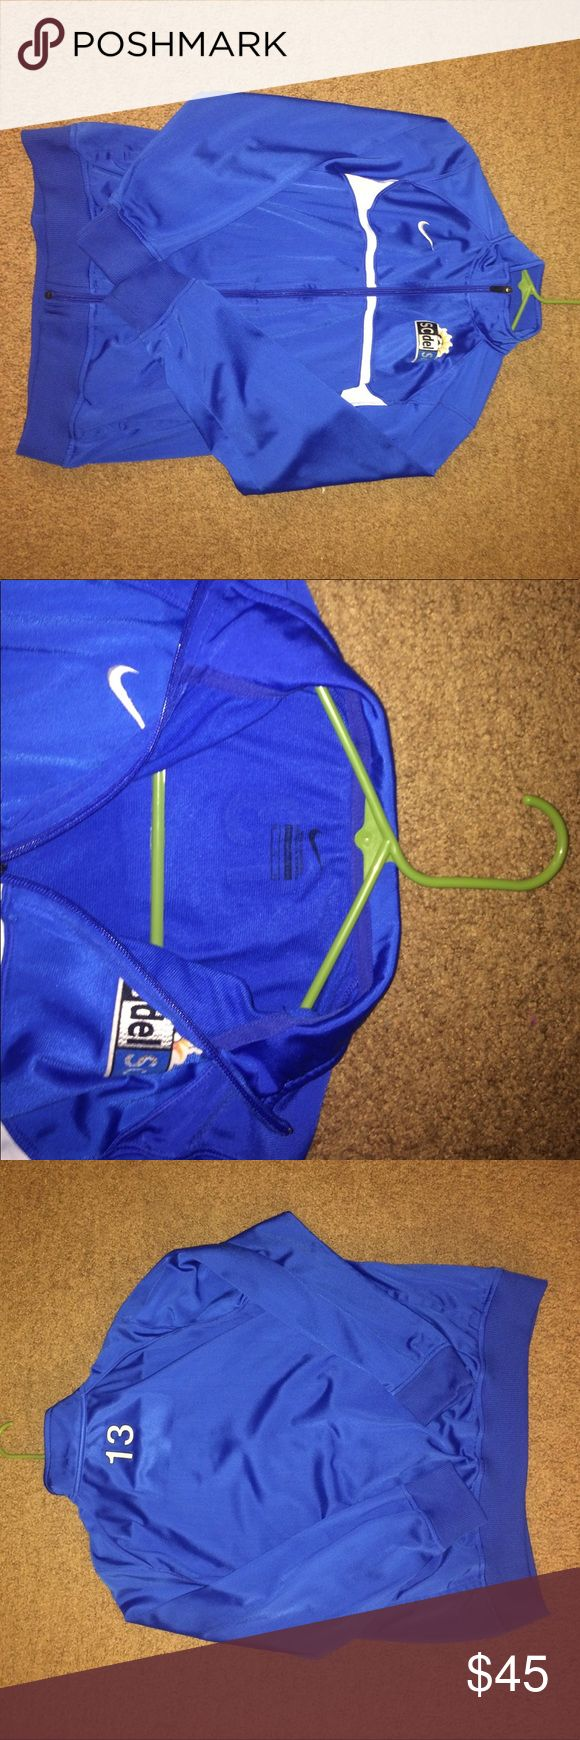 Nike soccer jacket This was my old soccer jacket. Size youth extra large , fits an adult small and is a loose fit on me. I don't ever wear it anymore it's been worn a decent amount of times. No signs of wear or tear and no stains. Smoke free home. Nike Jackets & Coats